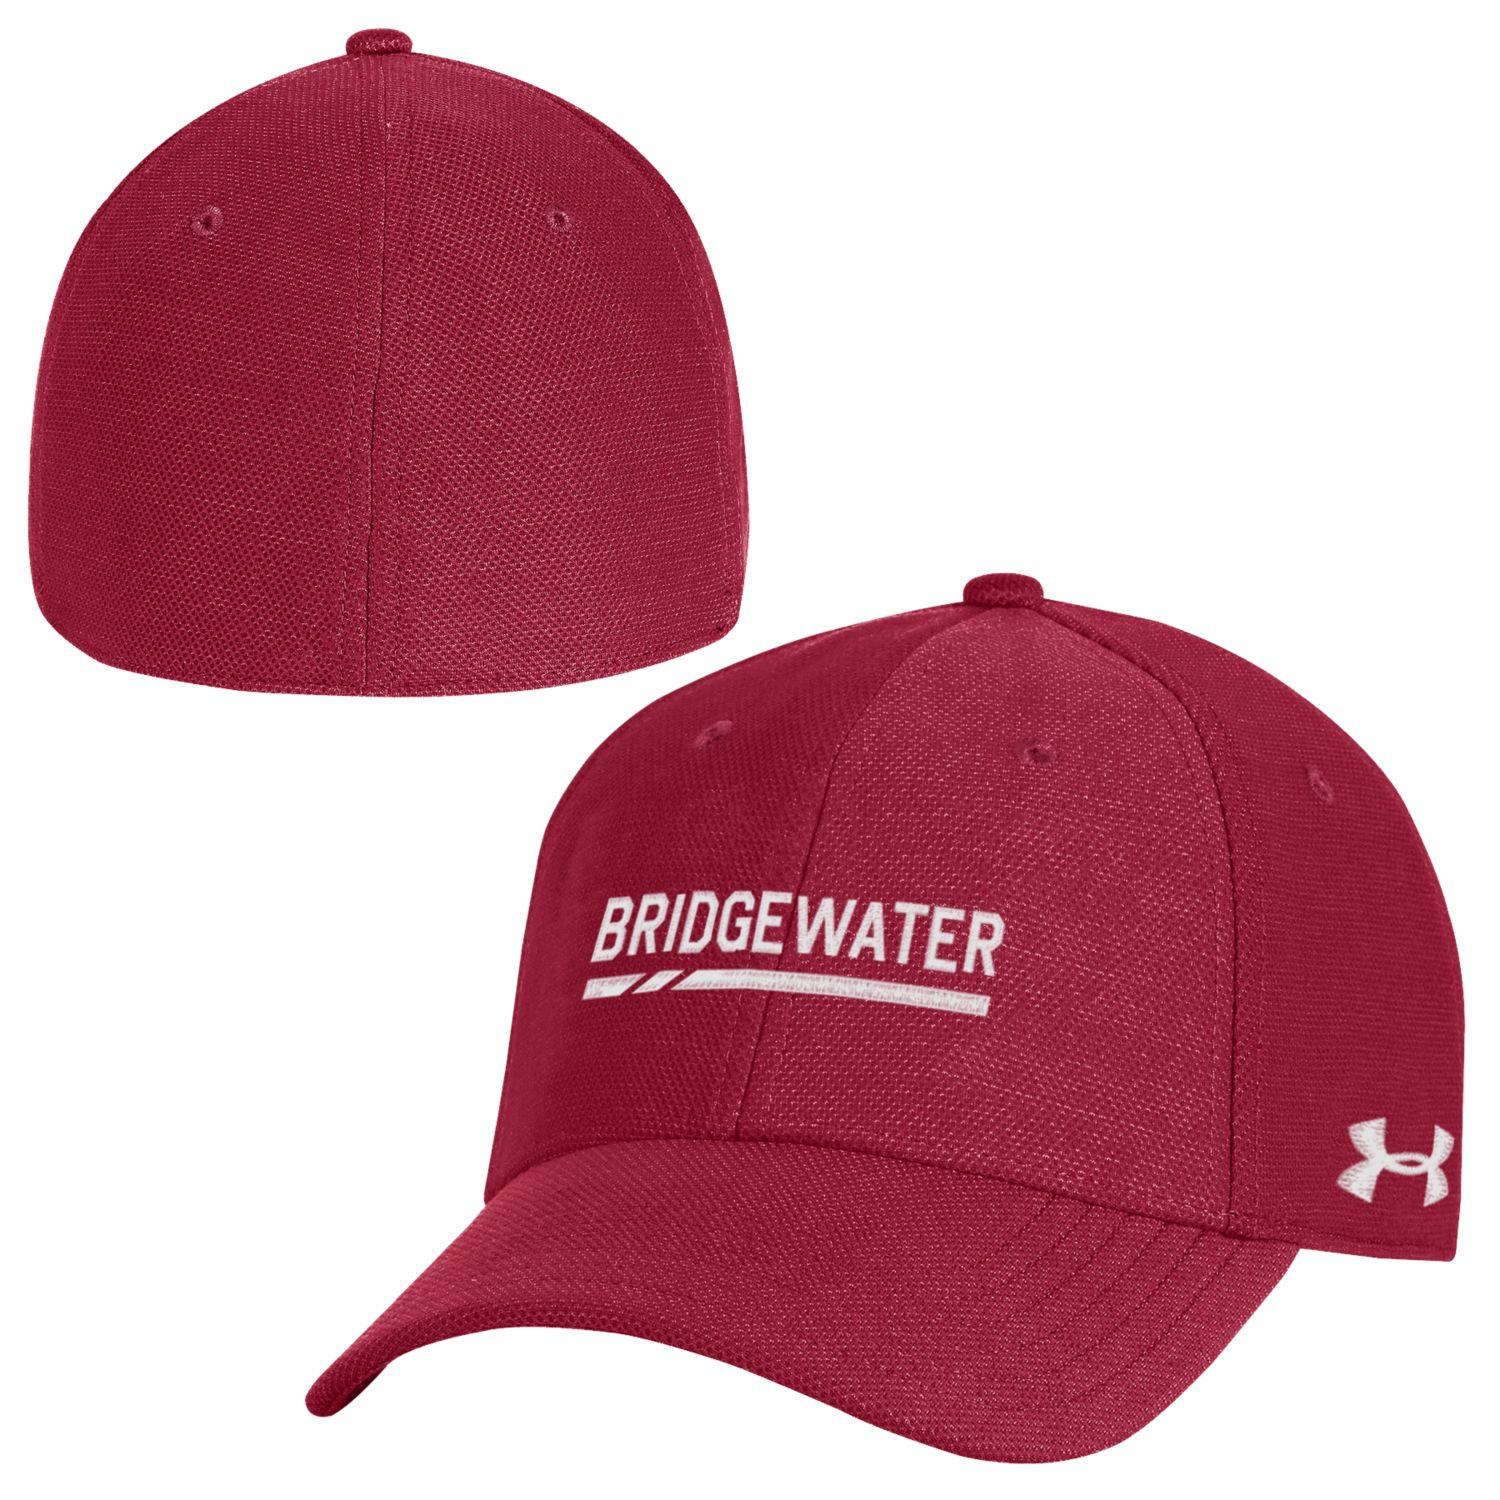 Bridgewater College Crimson Under Armour Men's Hat